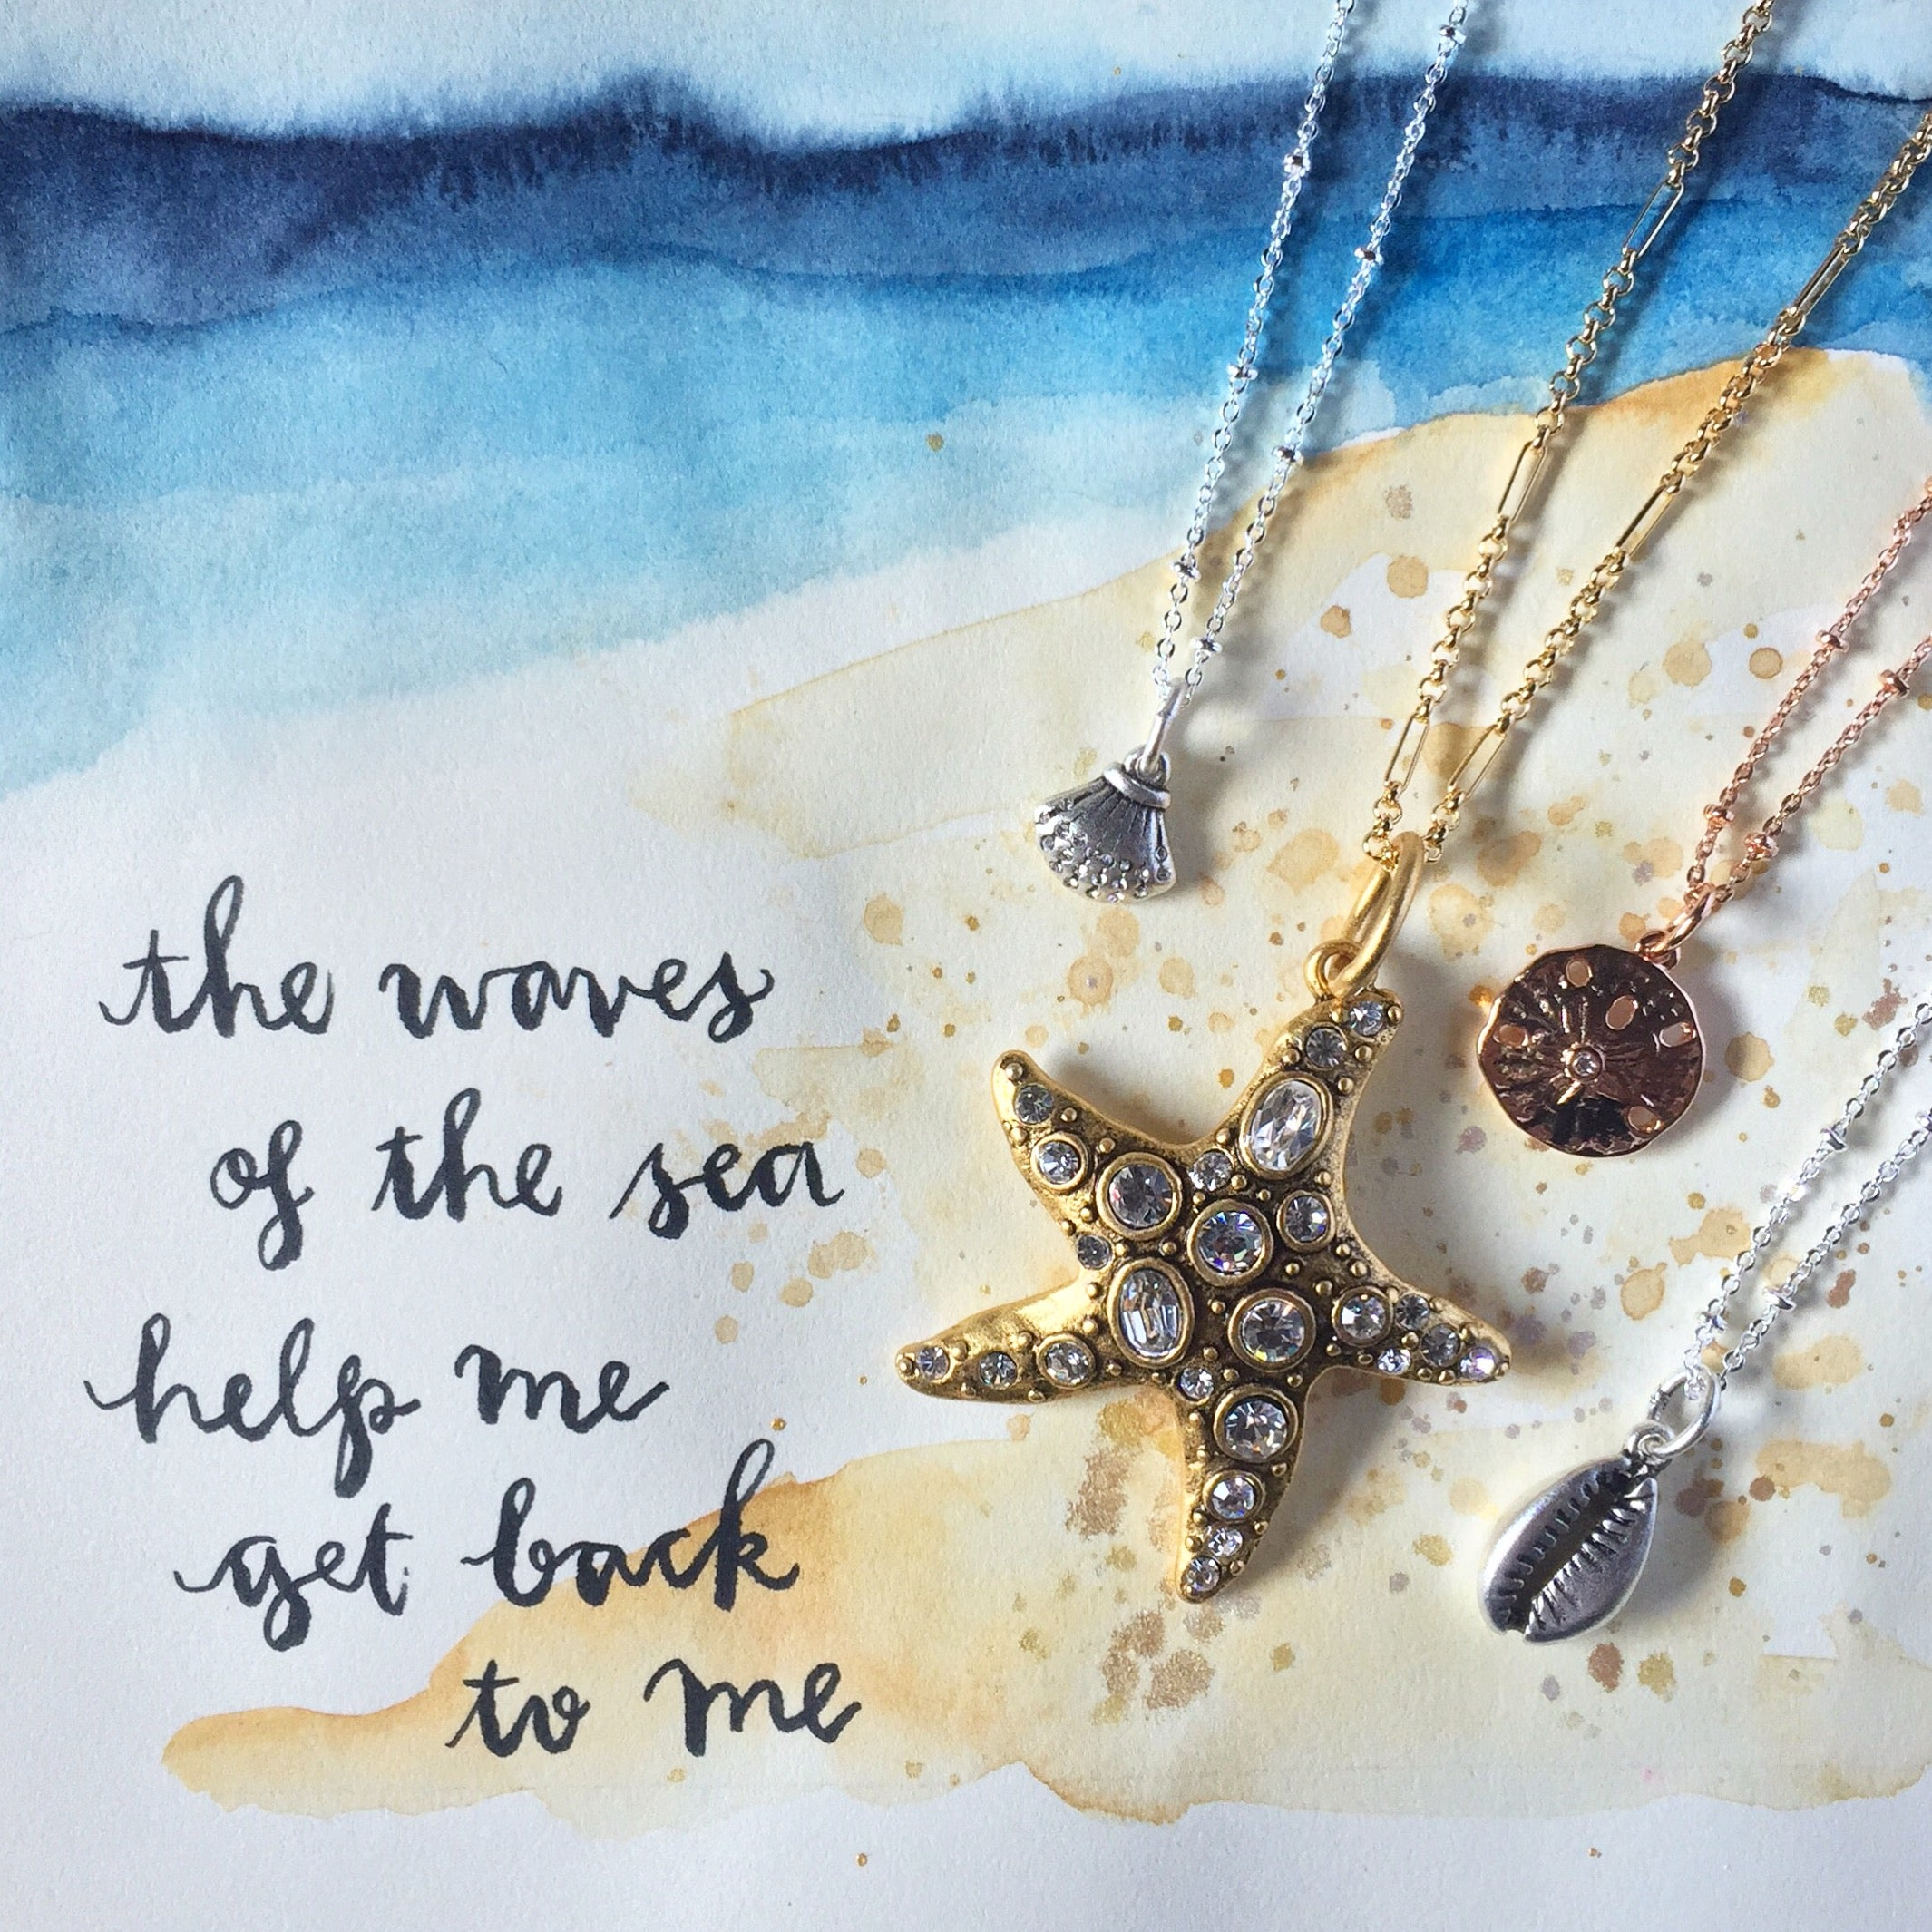 #SequinSayings - Resort Talismans